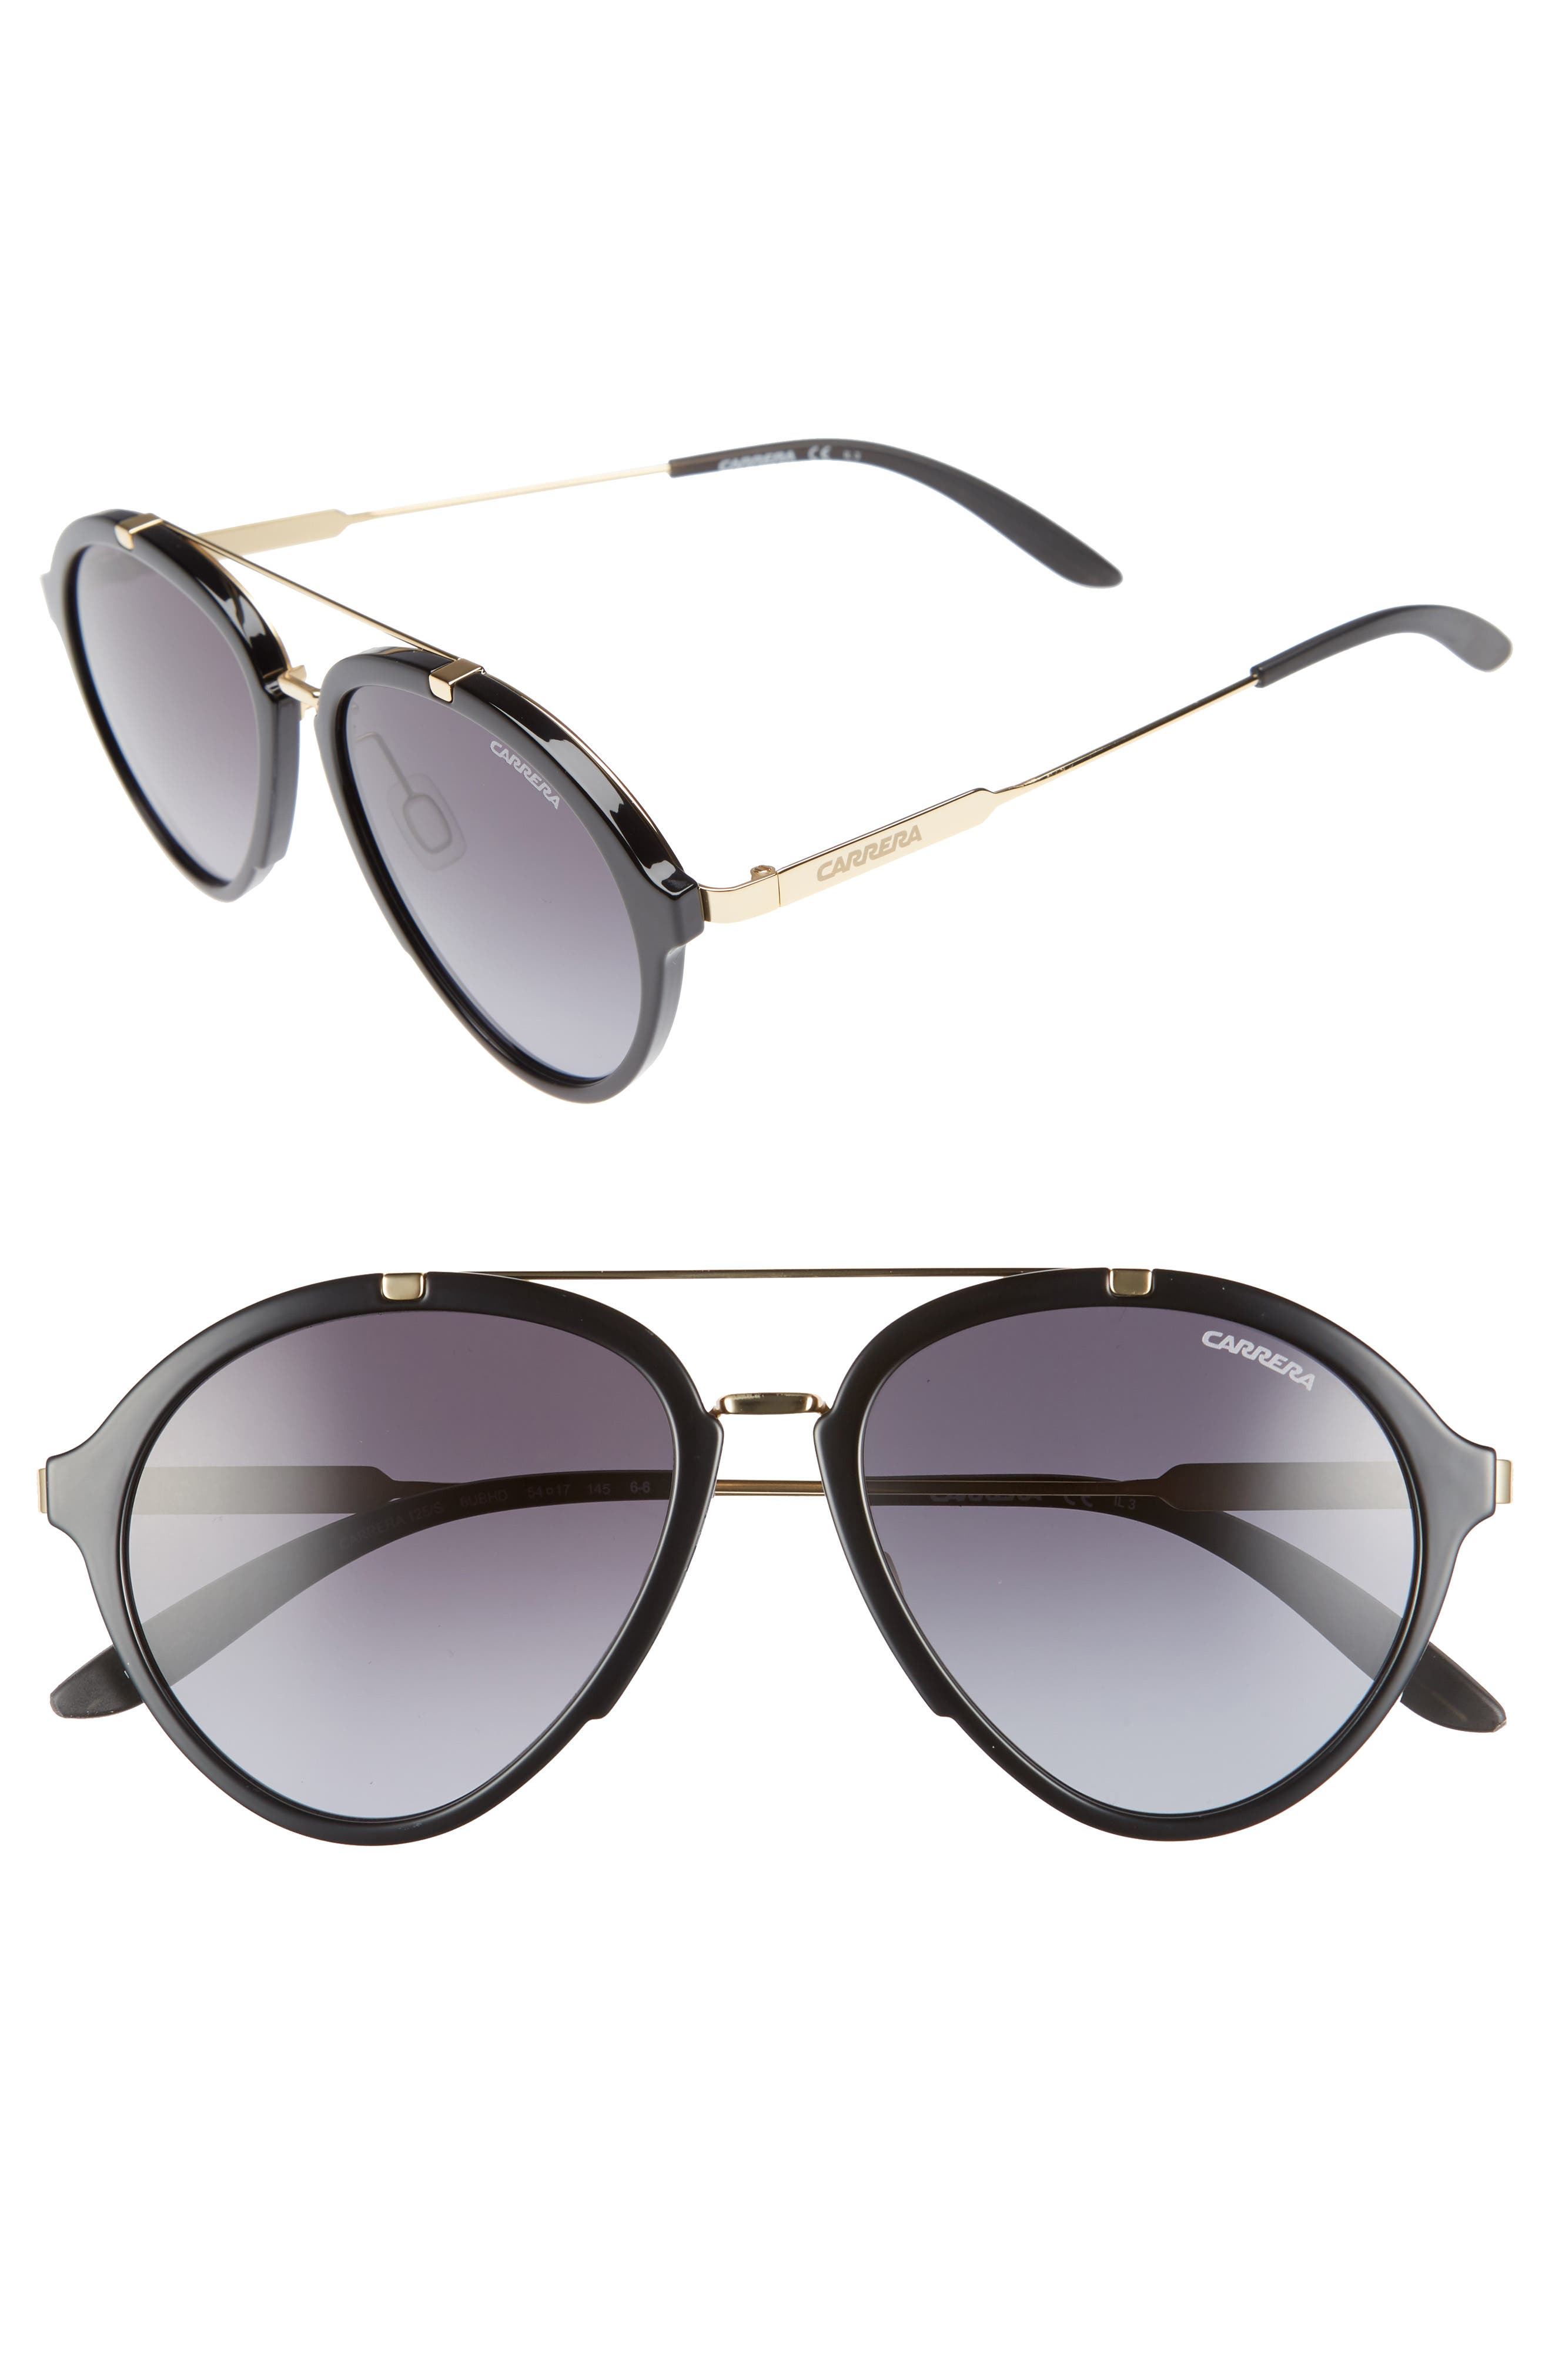 54mm Aviator Sunglasses,                             Alternate thumbnail 2, color,                             001